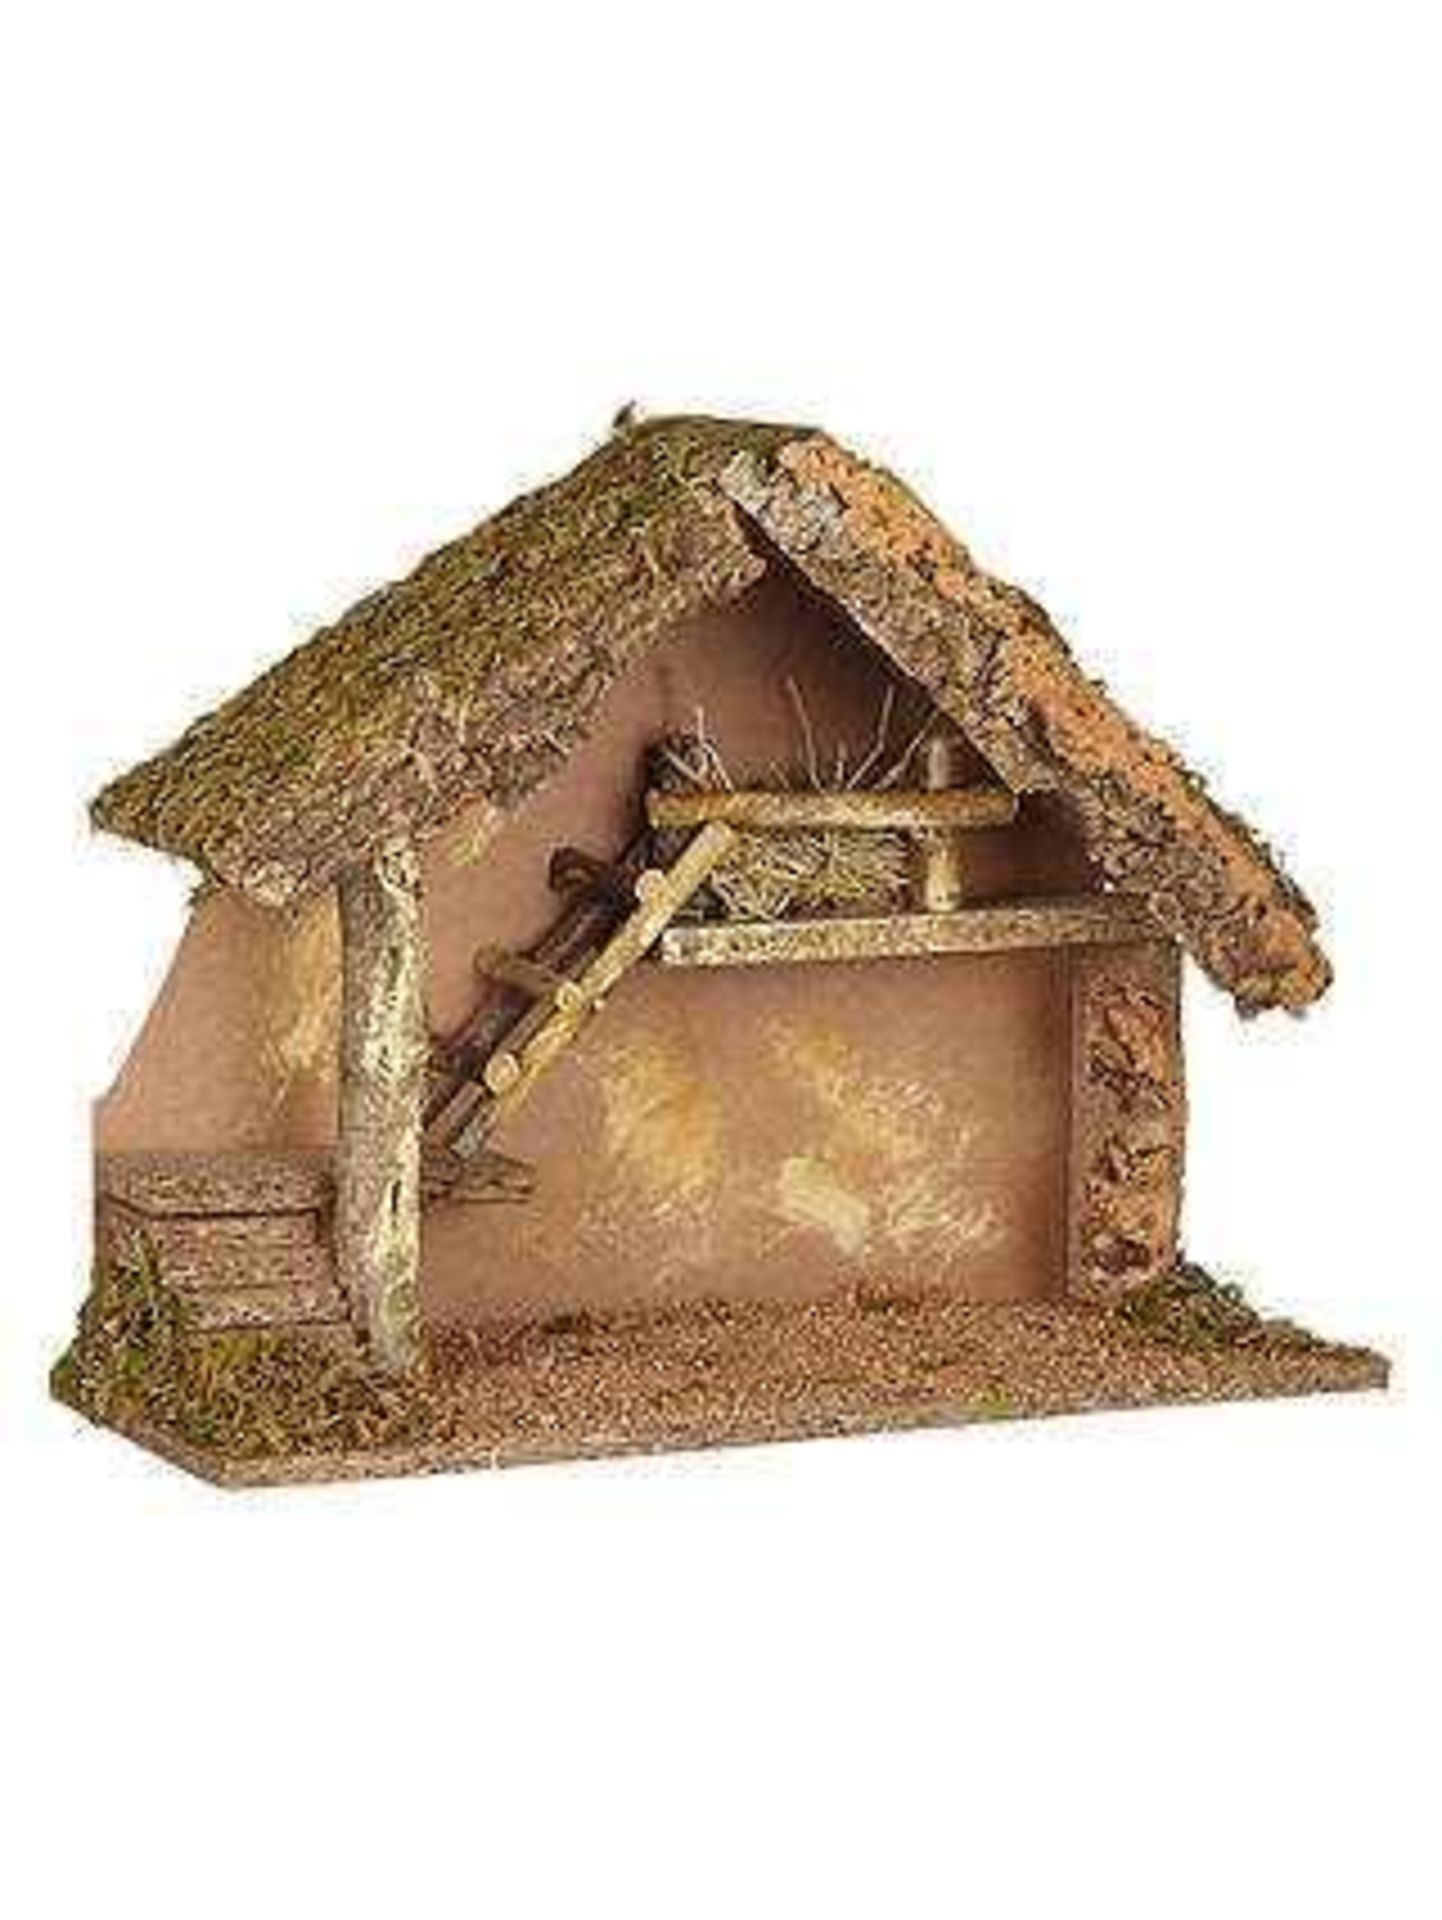 RRP £30 Unboxed Wooden Small Nativity Farm Hut